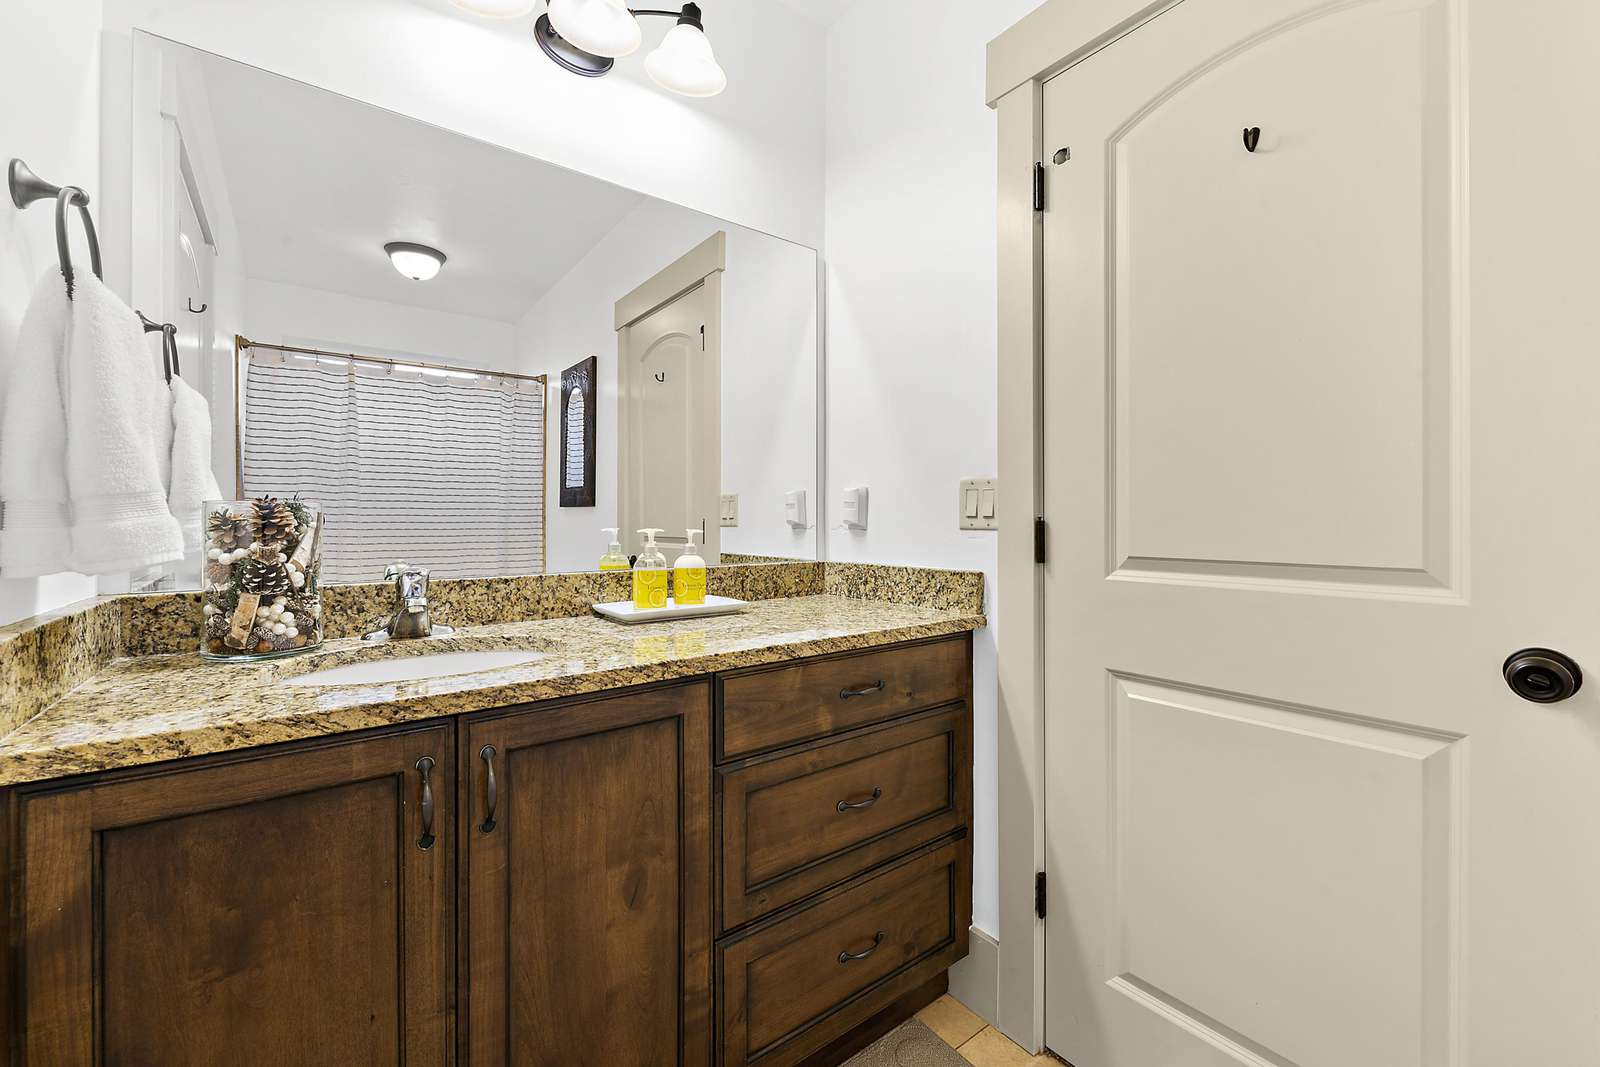 Fully equipped shared bathroom